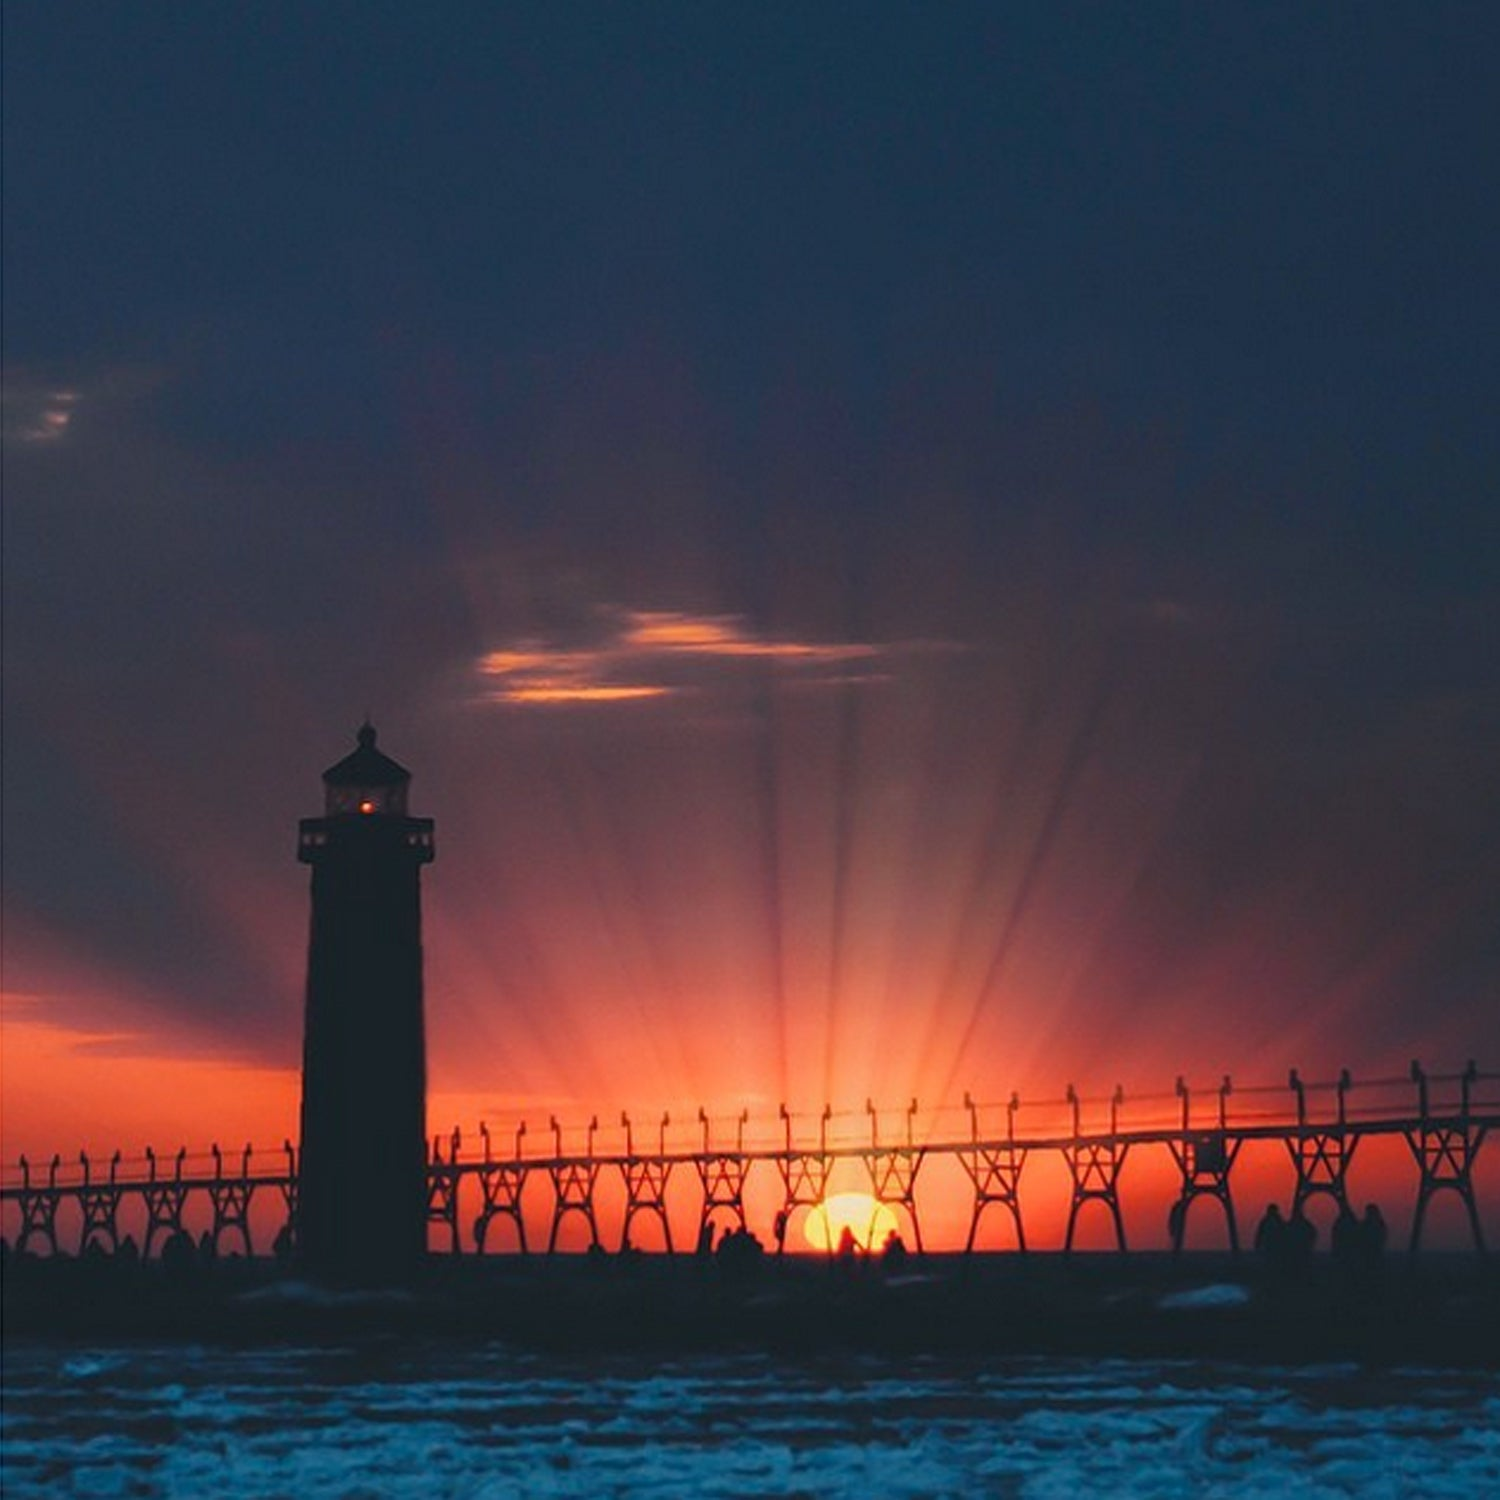 {Sunset Photo of the Day} Sunset is at 8:43pm - Check out this stunner by @seoung ❤️ #visitgrandhaven